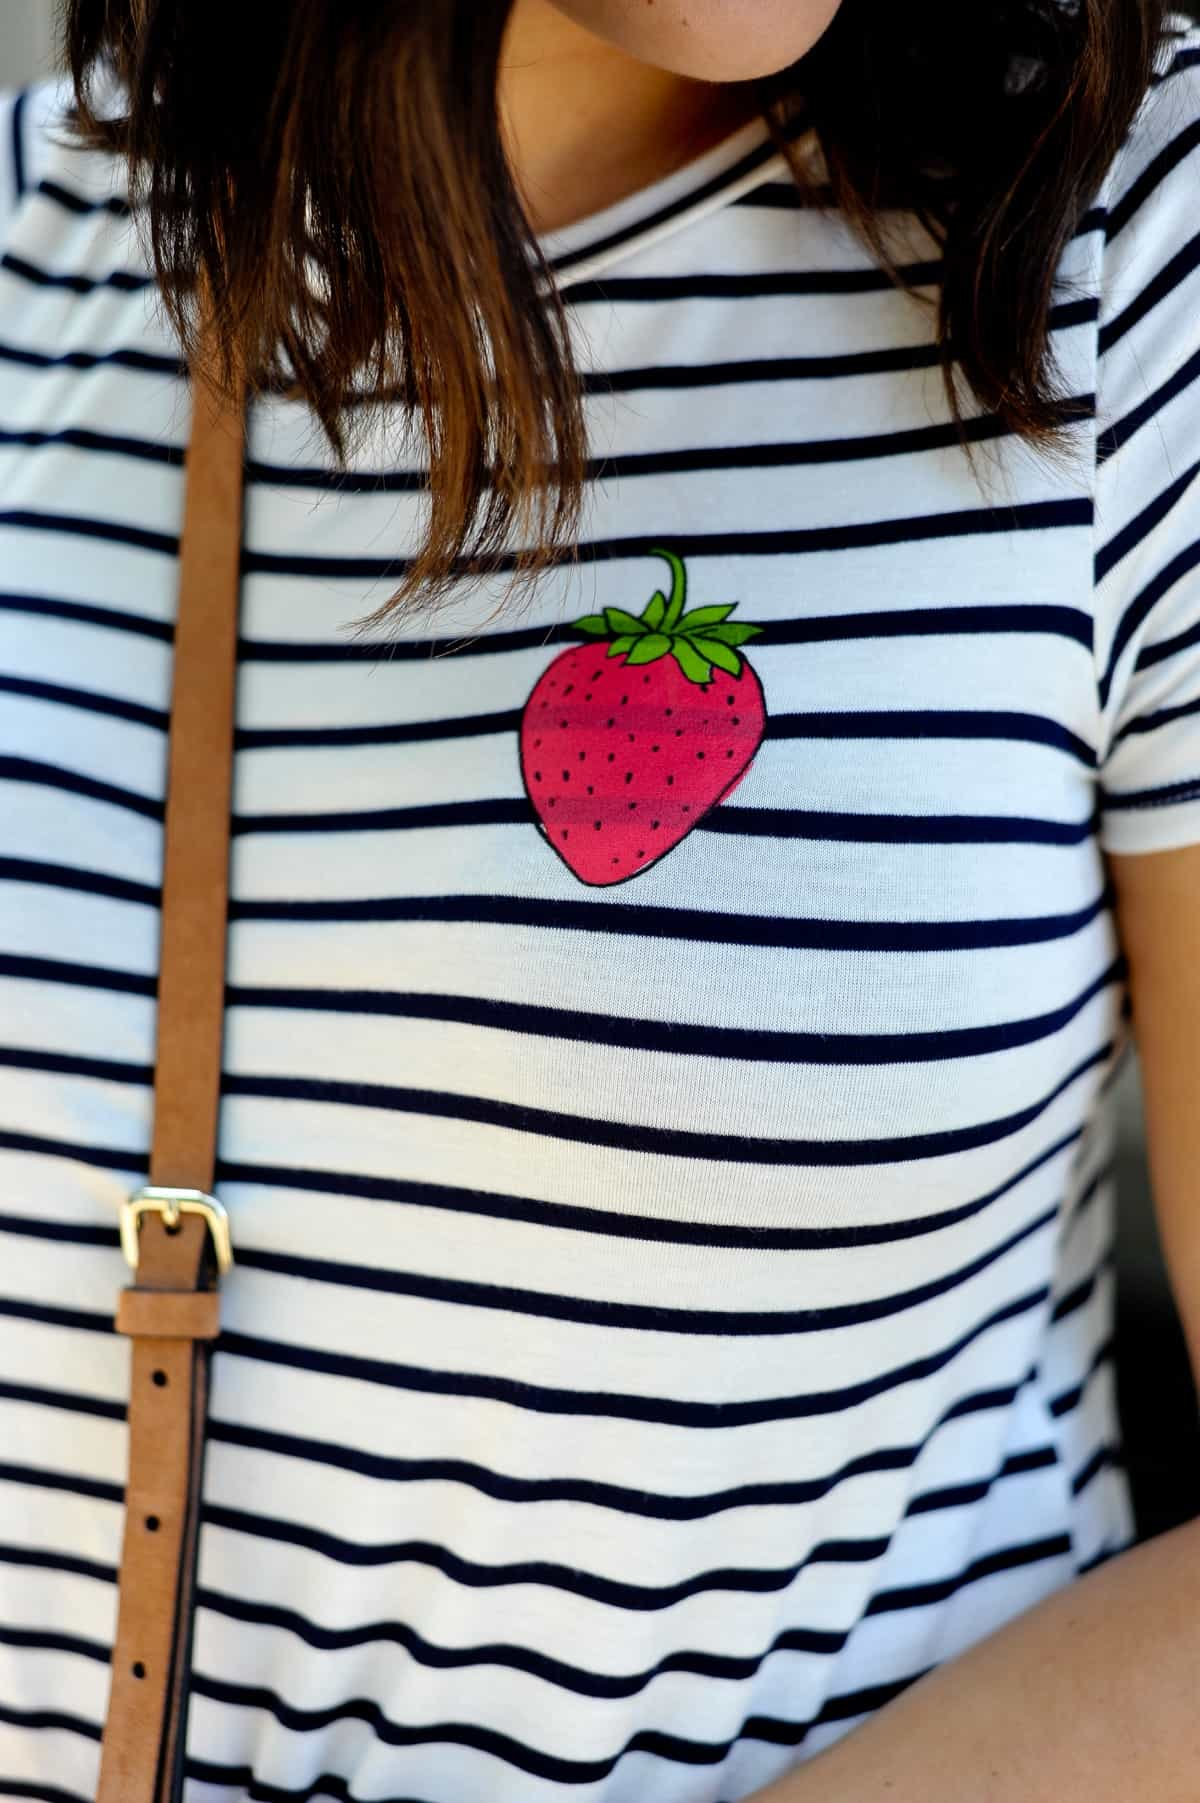 4th of july outfit ideas, striped tee outfits - @mystylevita - 27